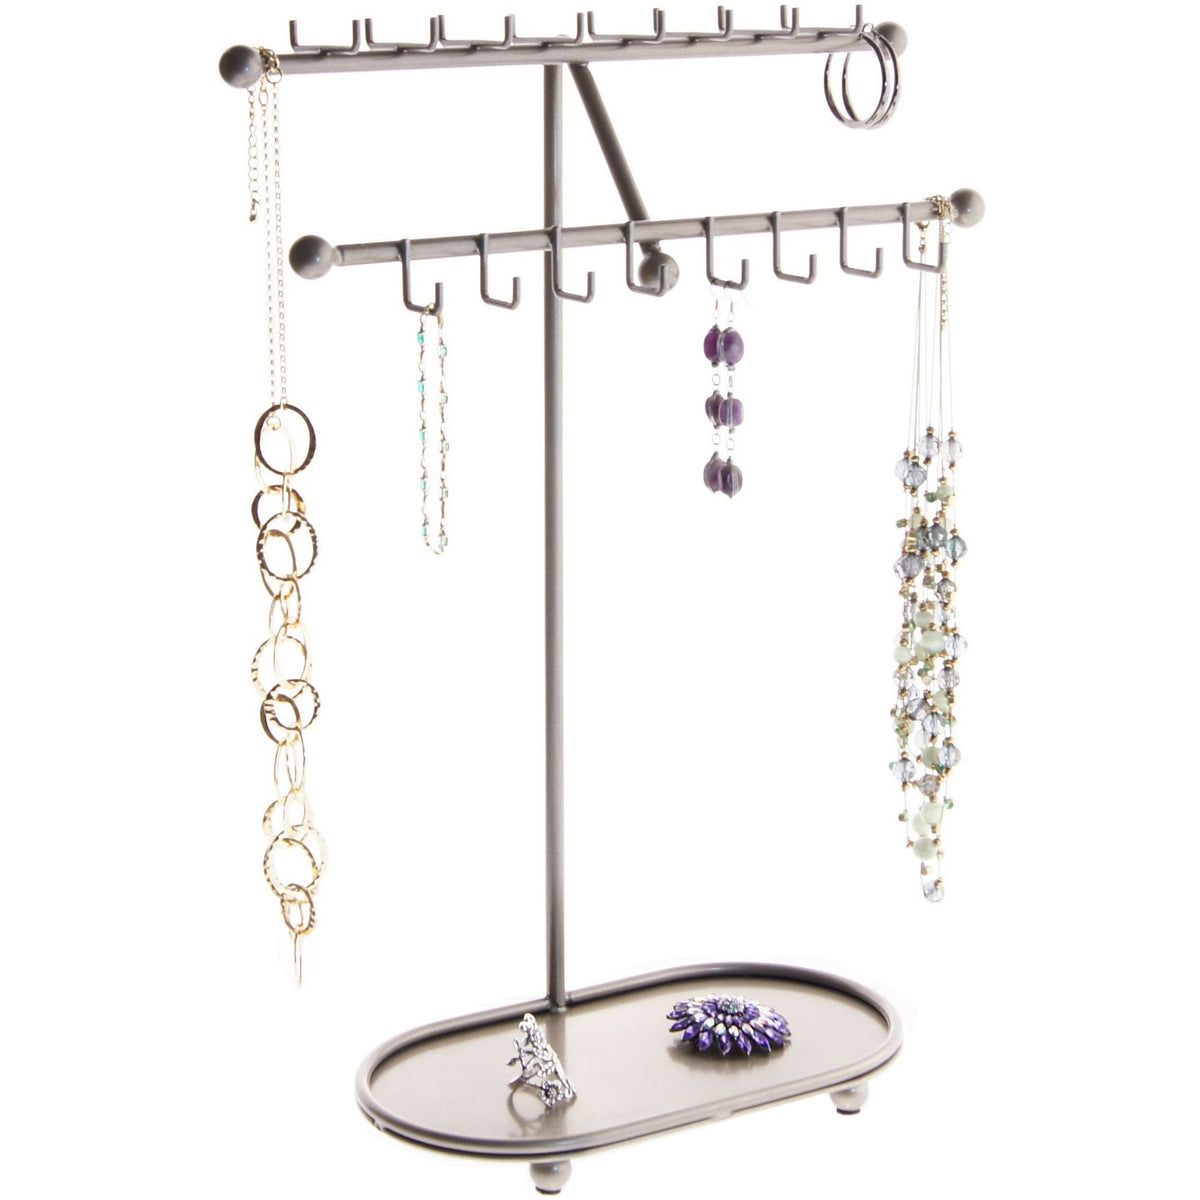 Necklace Holder Display Stand Long Necklace Organizer Rack Angelynn S